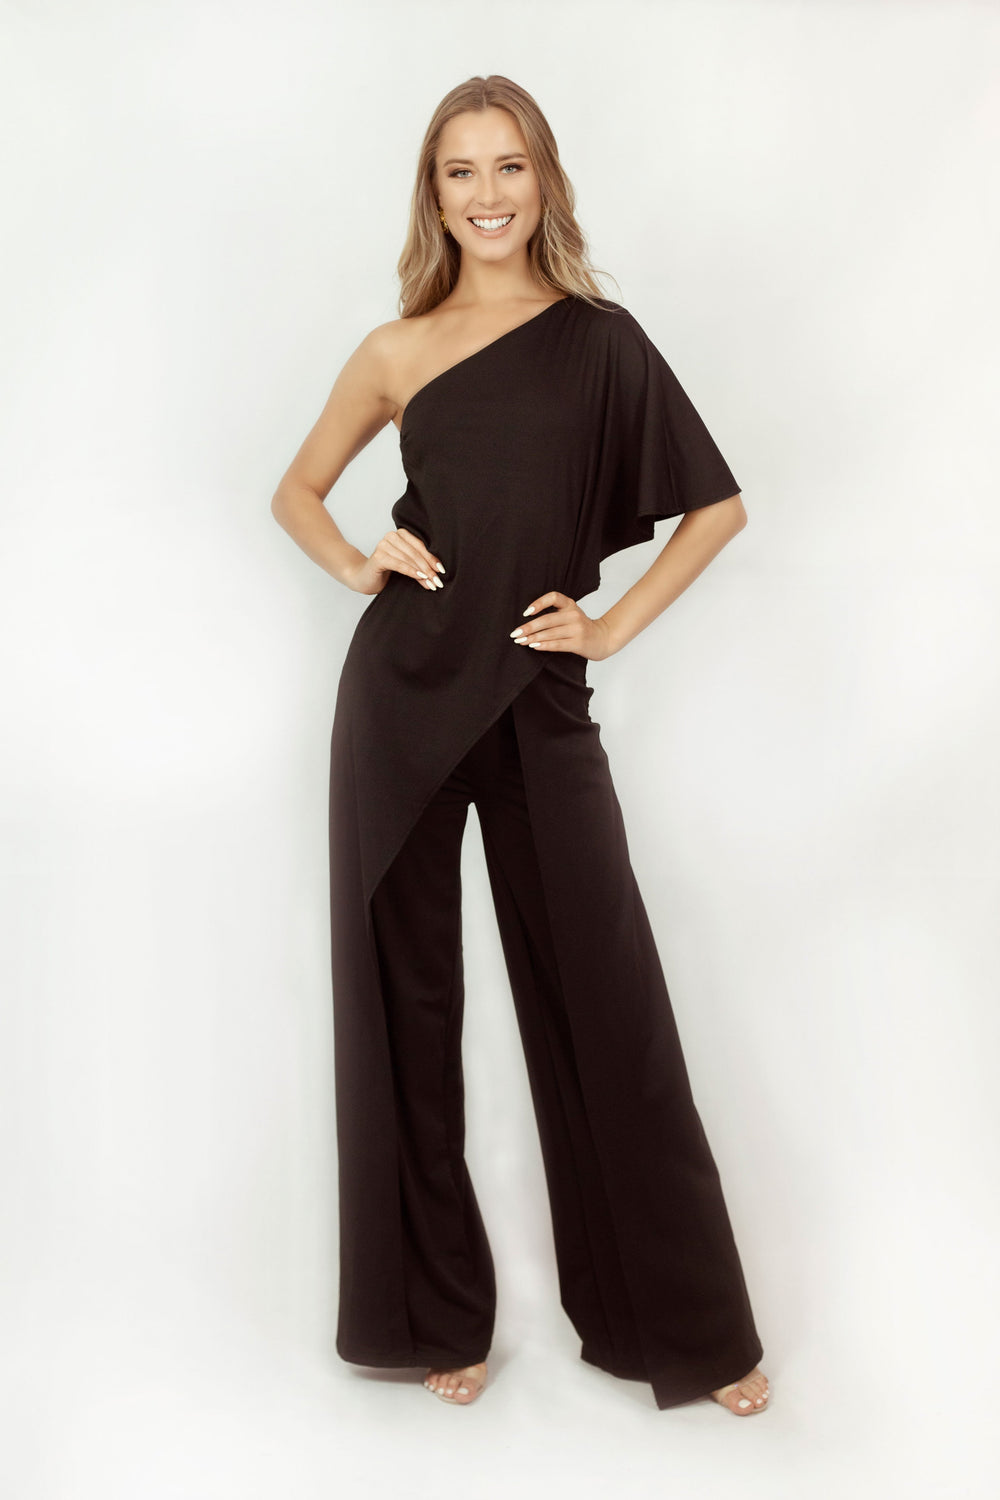 SIMONA JUMPSUIT - Chic Le Frique